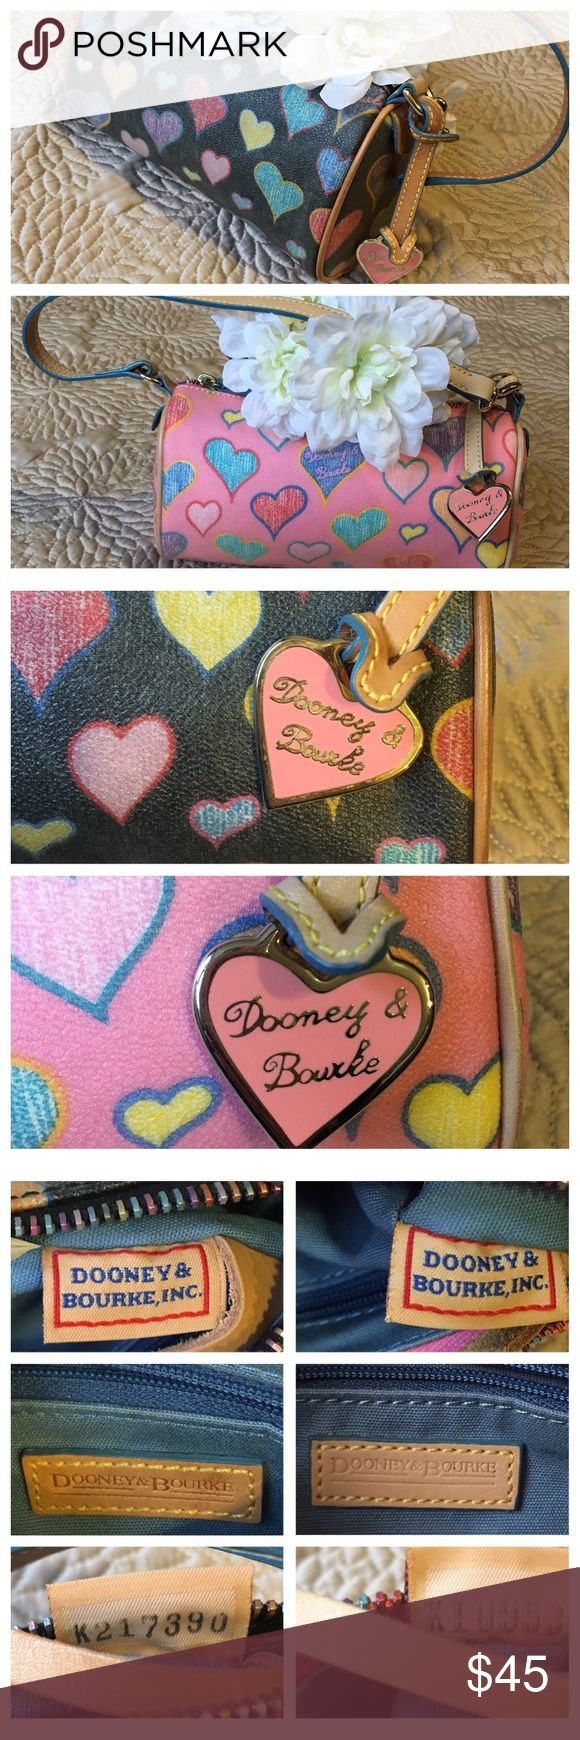 Dooney and Bourke Lot of 2 HandBags 2 Vintage Dooney and Bourke Handbags!   Features:  🔹Signature heart charm 🔹Attached interior key ring holder  🔹Multicolored zipper 🔹Dooney and Bourke signature on the exterior leather.  Pre-owned Condition: mild fading/stains at the beige perimeter of each purse; inside of both purses generally clean (no major stains). Dooney & Bourke Bags Shoulder Bags